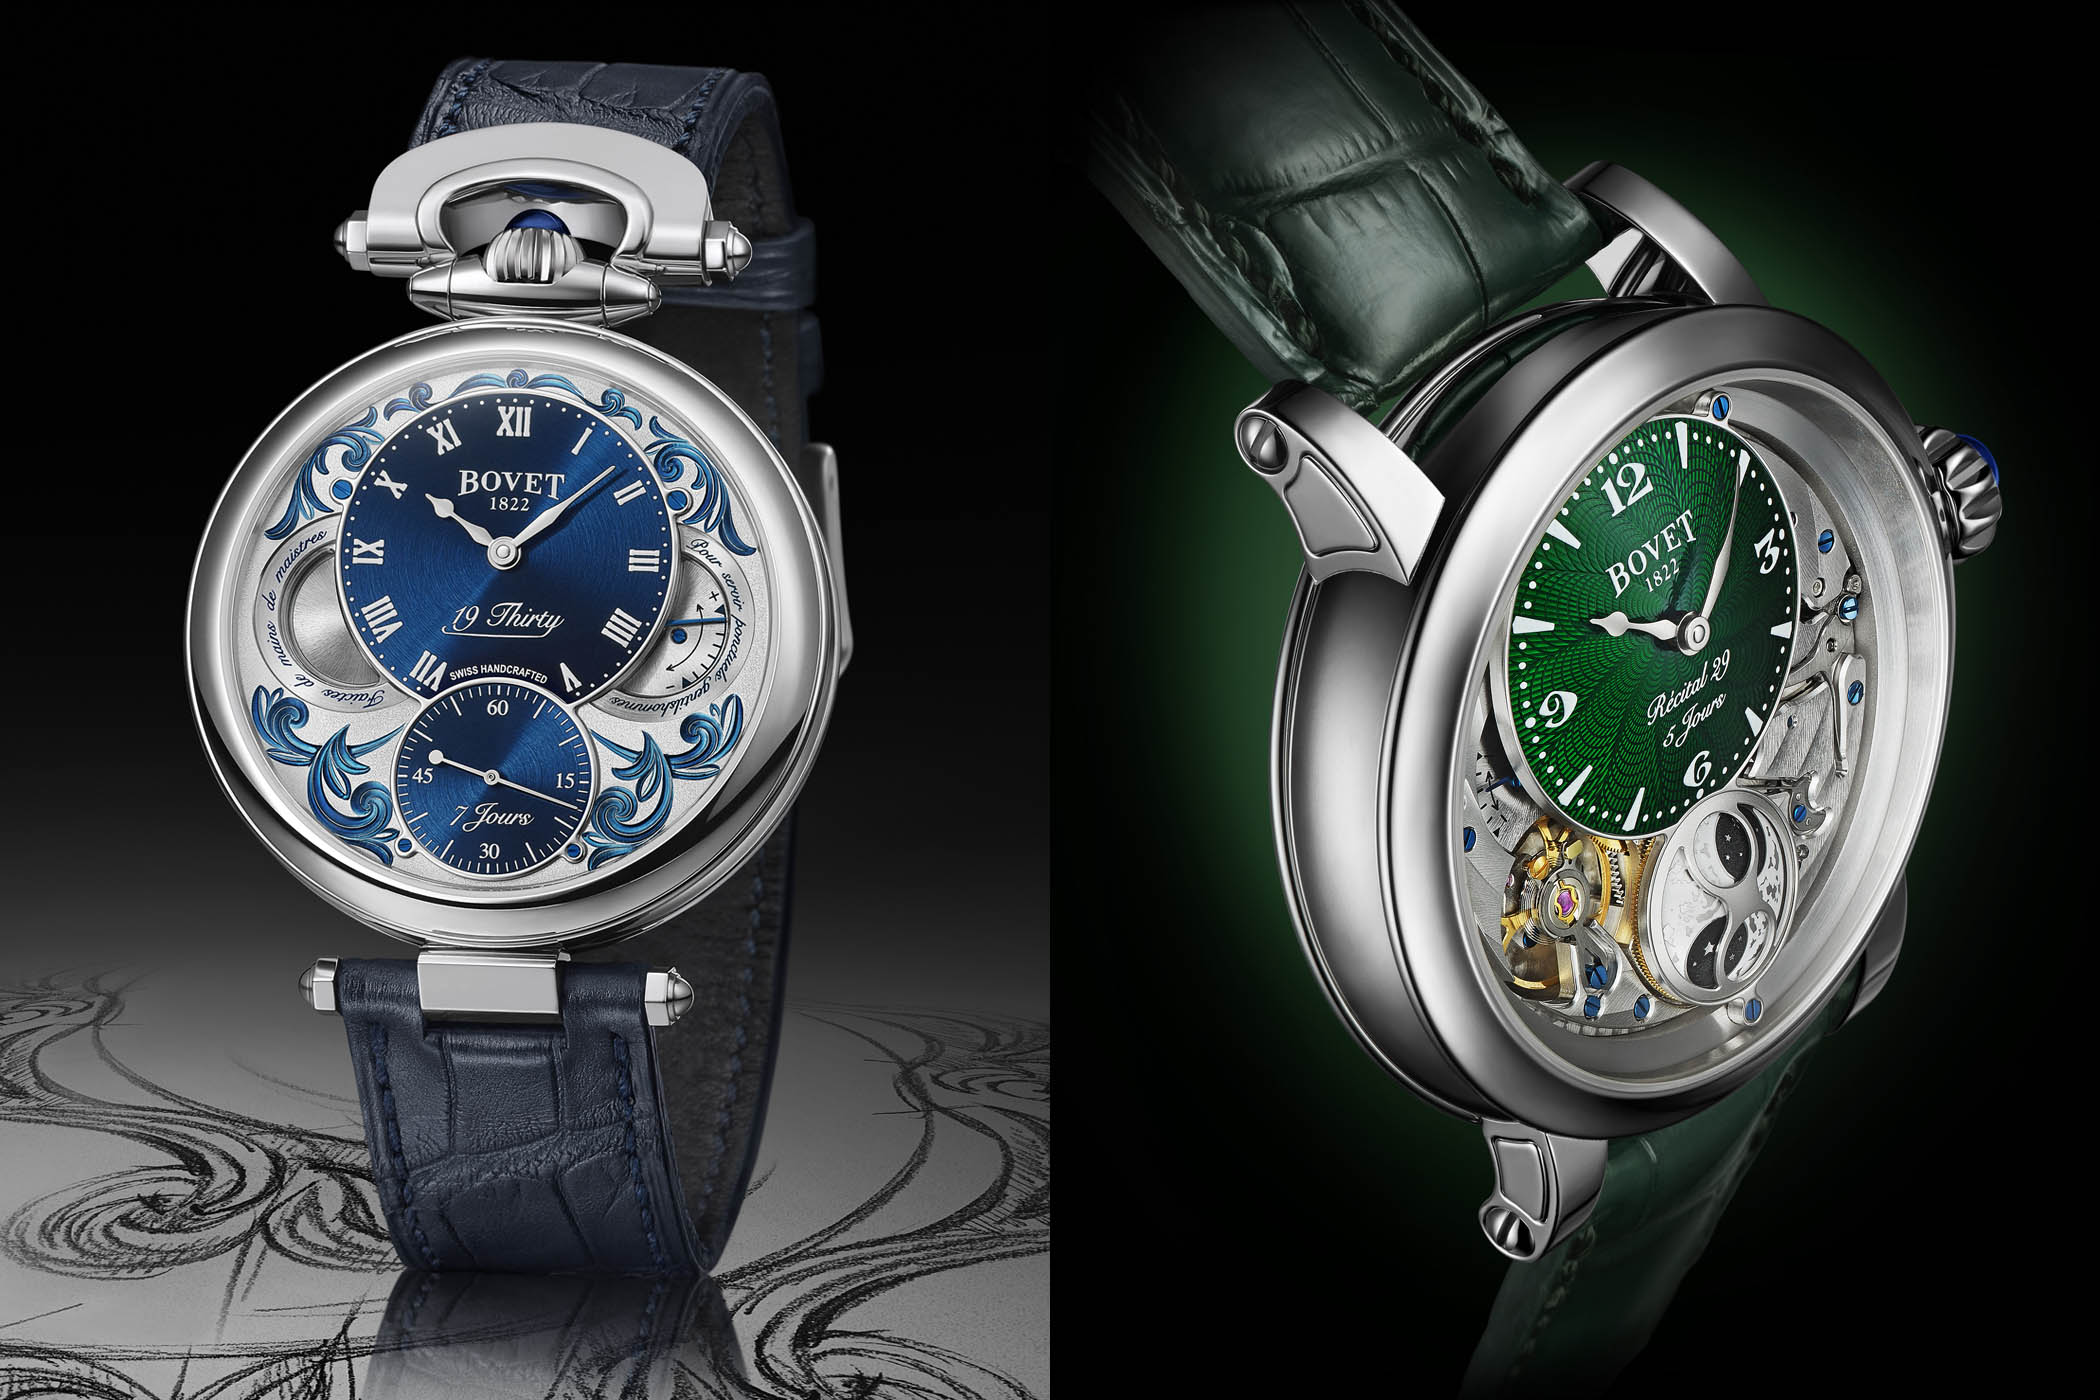 Bovet Fleurier 19Thirty Fleurisane and All-New Bovet Dimier Recital 29